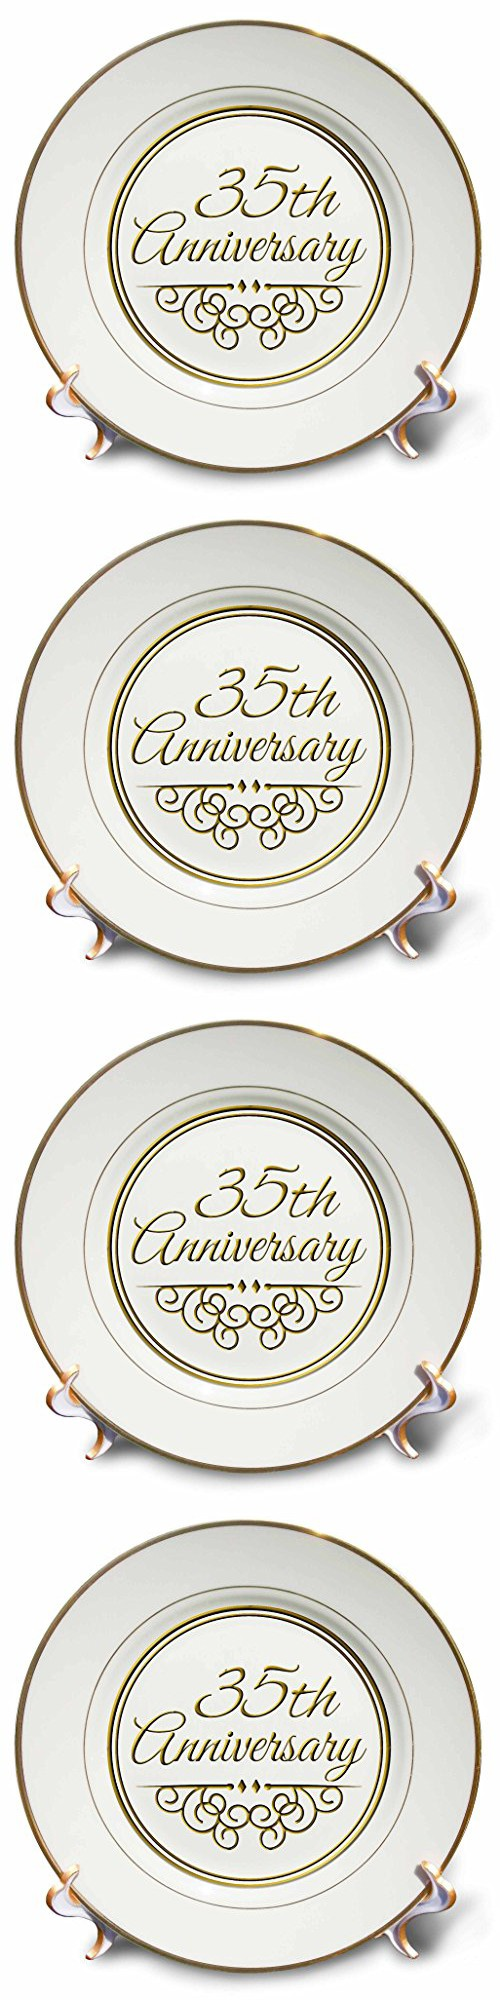 Personalized Bone Chinamemorative Plate For A 25th Wedding Anniversary   Rings And Doves Design With